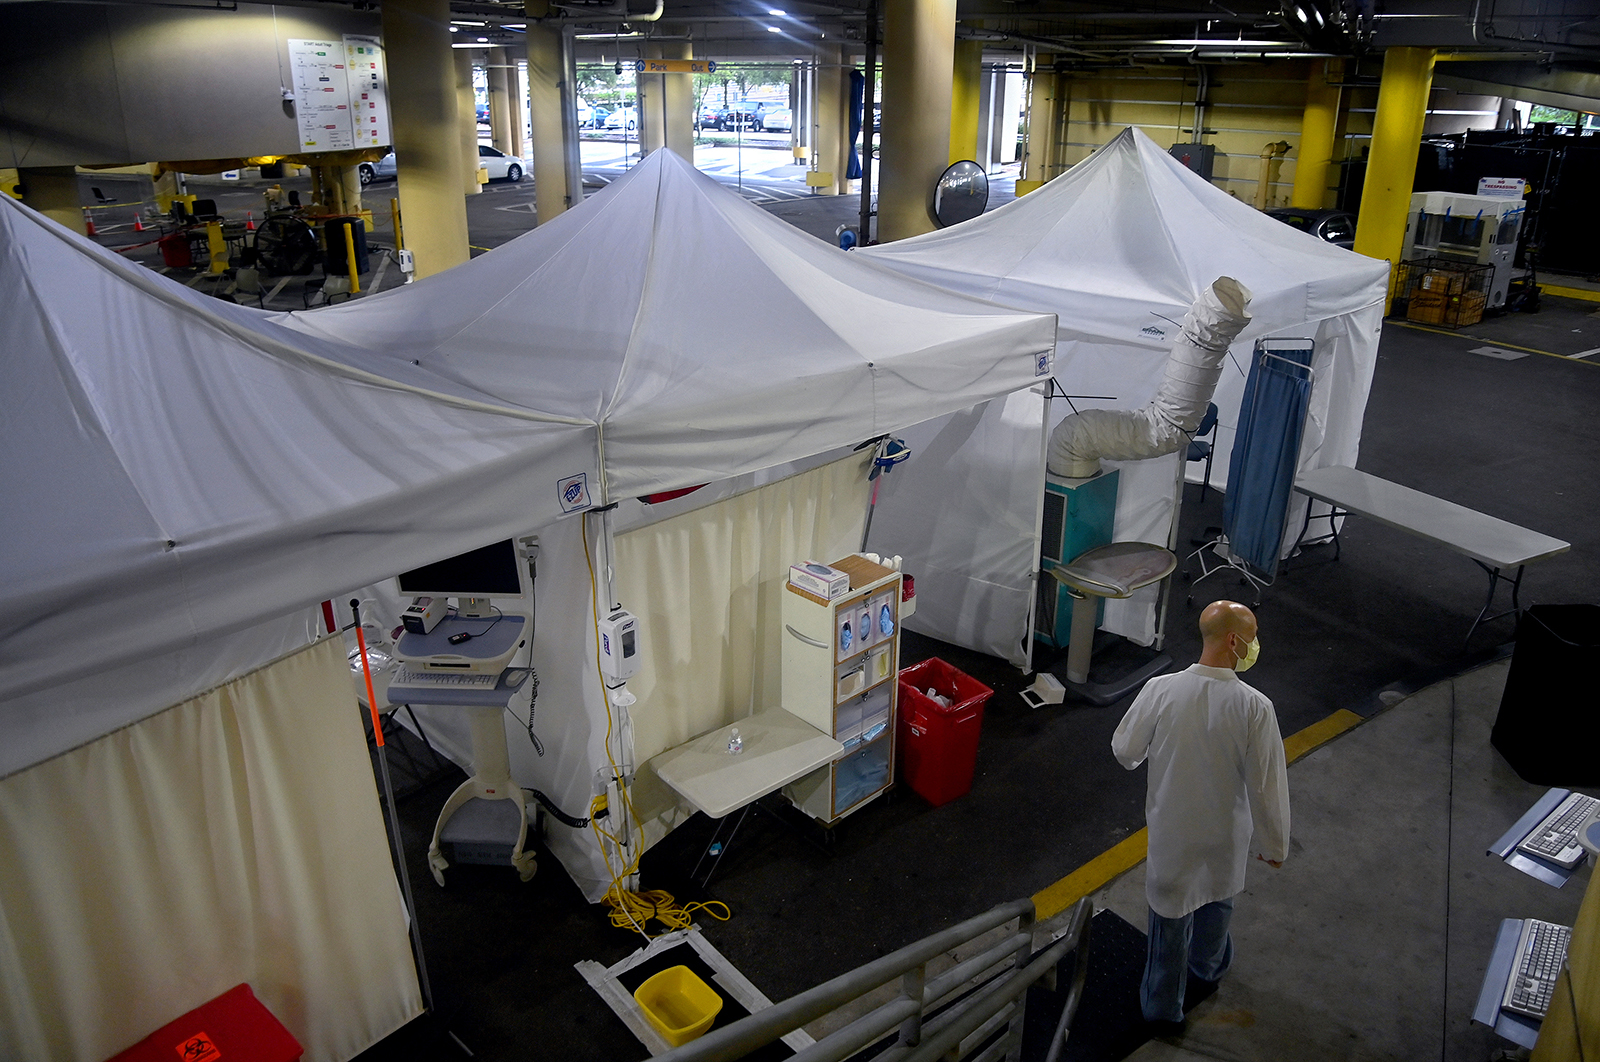 Dr. Davis Wein, an emergency medicine specialist walks, in the parking garage that was turned into a series of Covid-19 test tents at Tampa General Hospital in Florida on August 19.